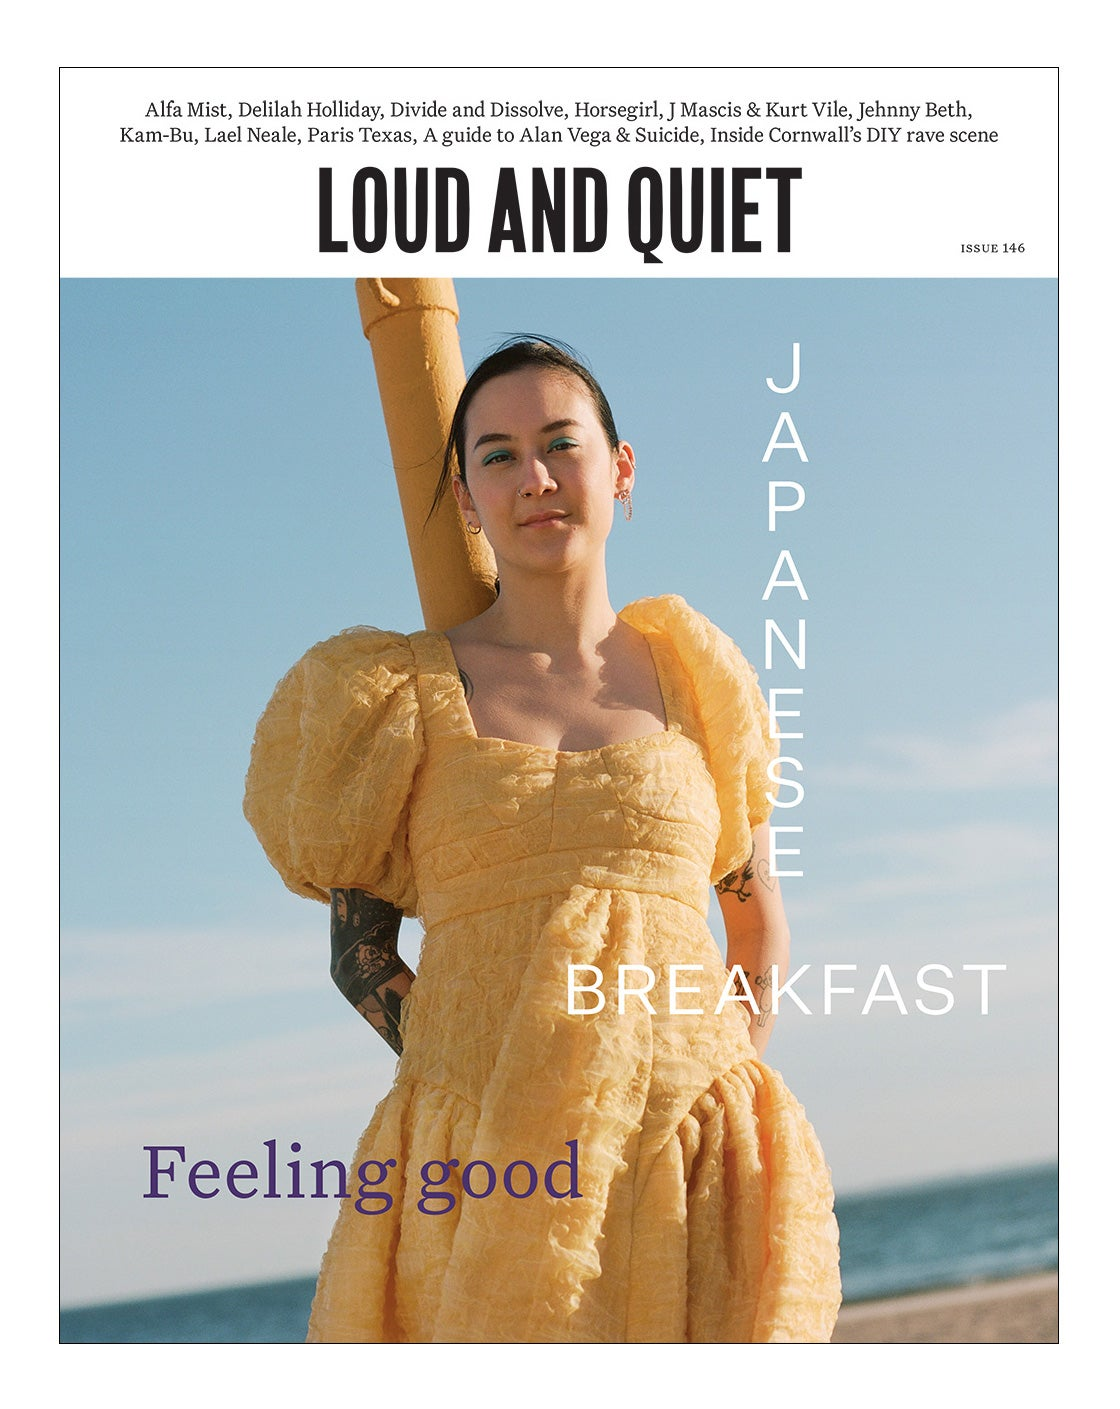 Image of Loud And Quiet issue 146